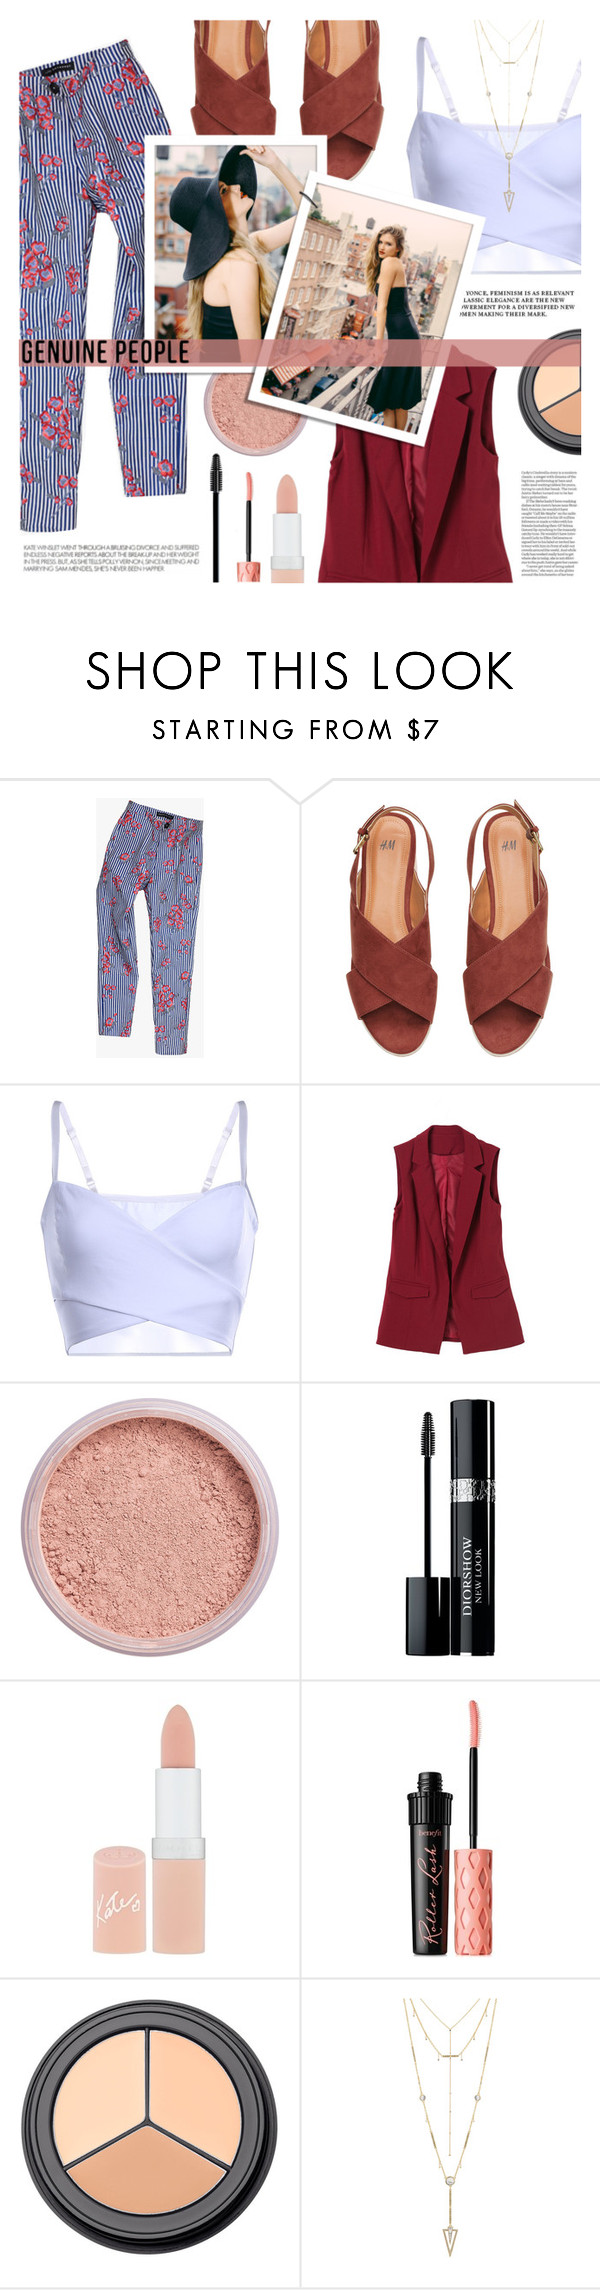 """""""Genuine-People"""" by tasnime-ben ❤ liked on Polyvore featuring H&M, W3LL People, Christian Dior, Rimmel, Benefit and House of Harlow 1960"""